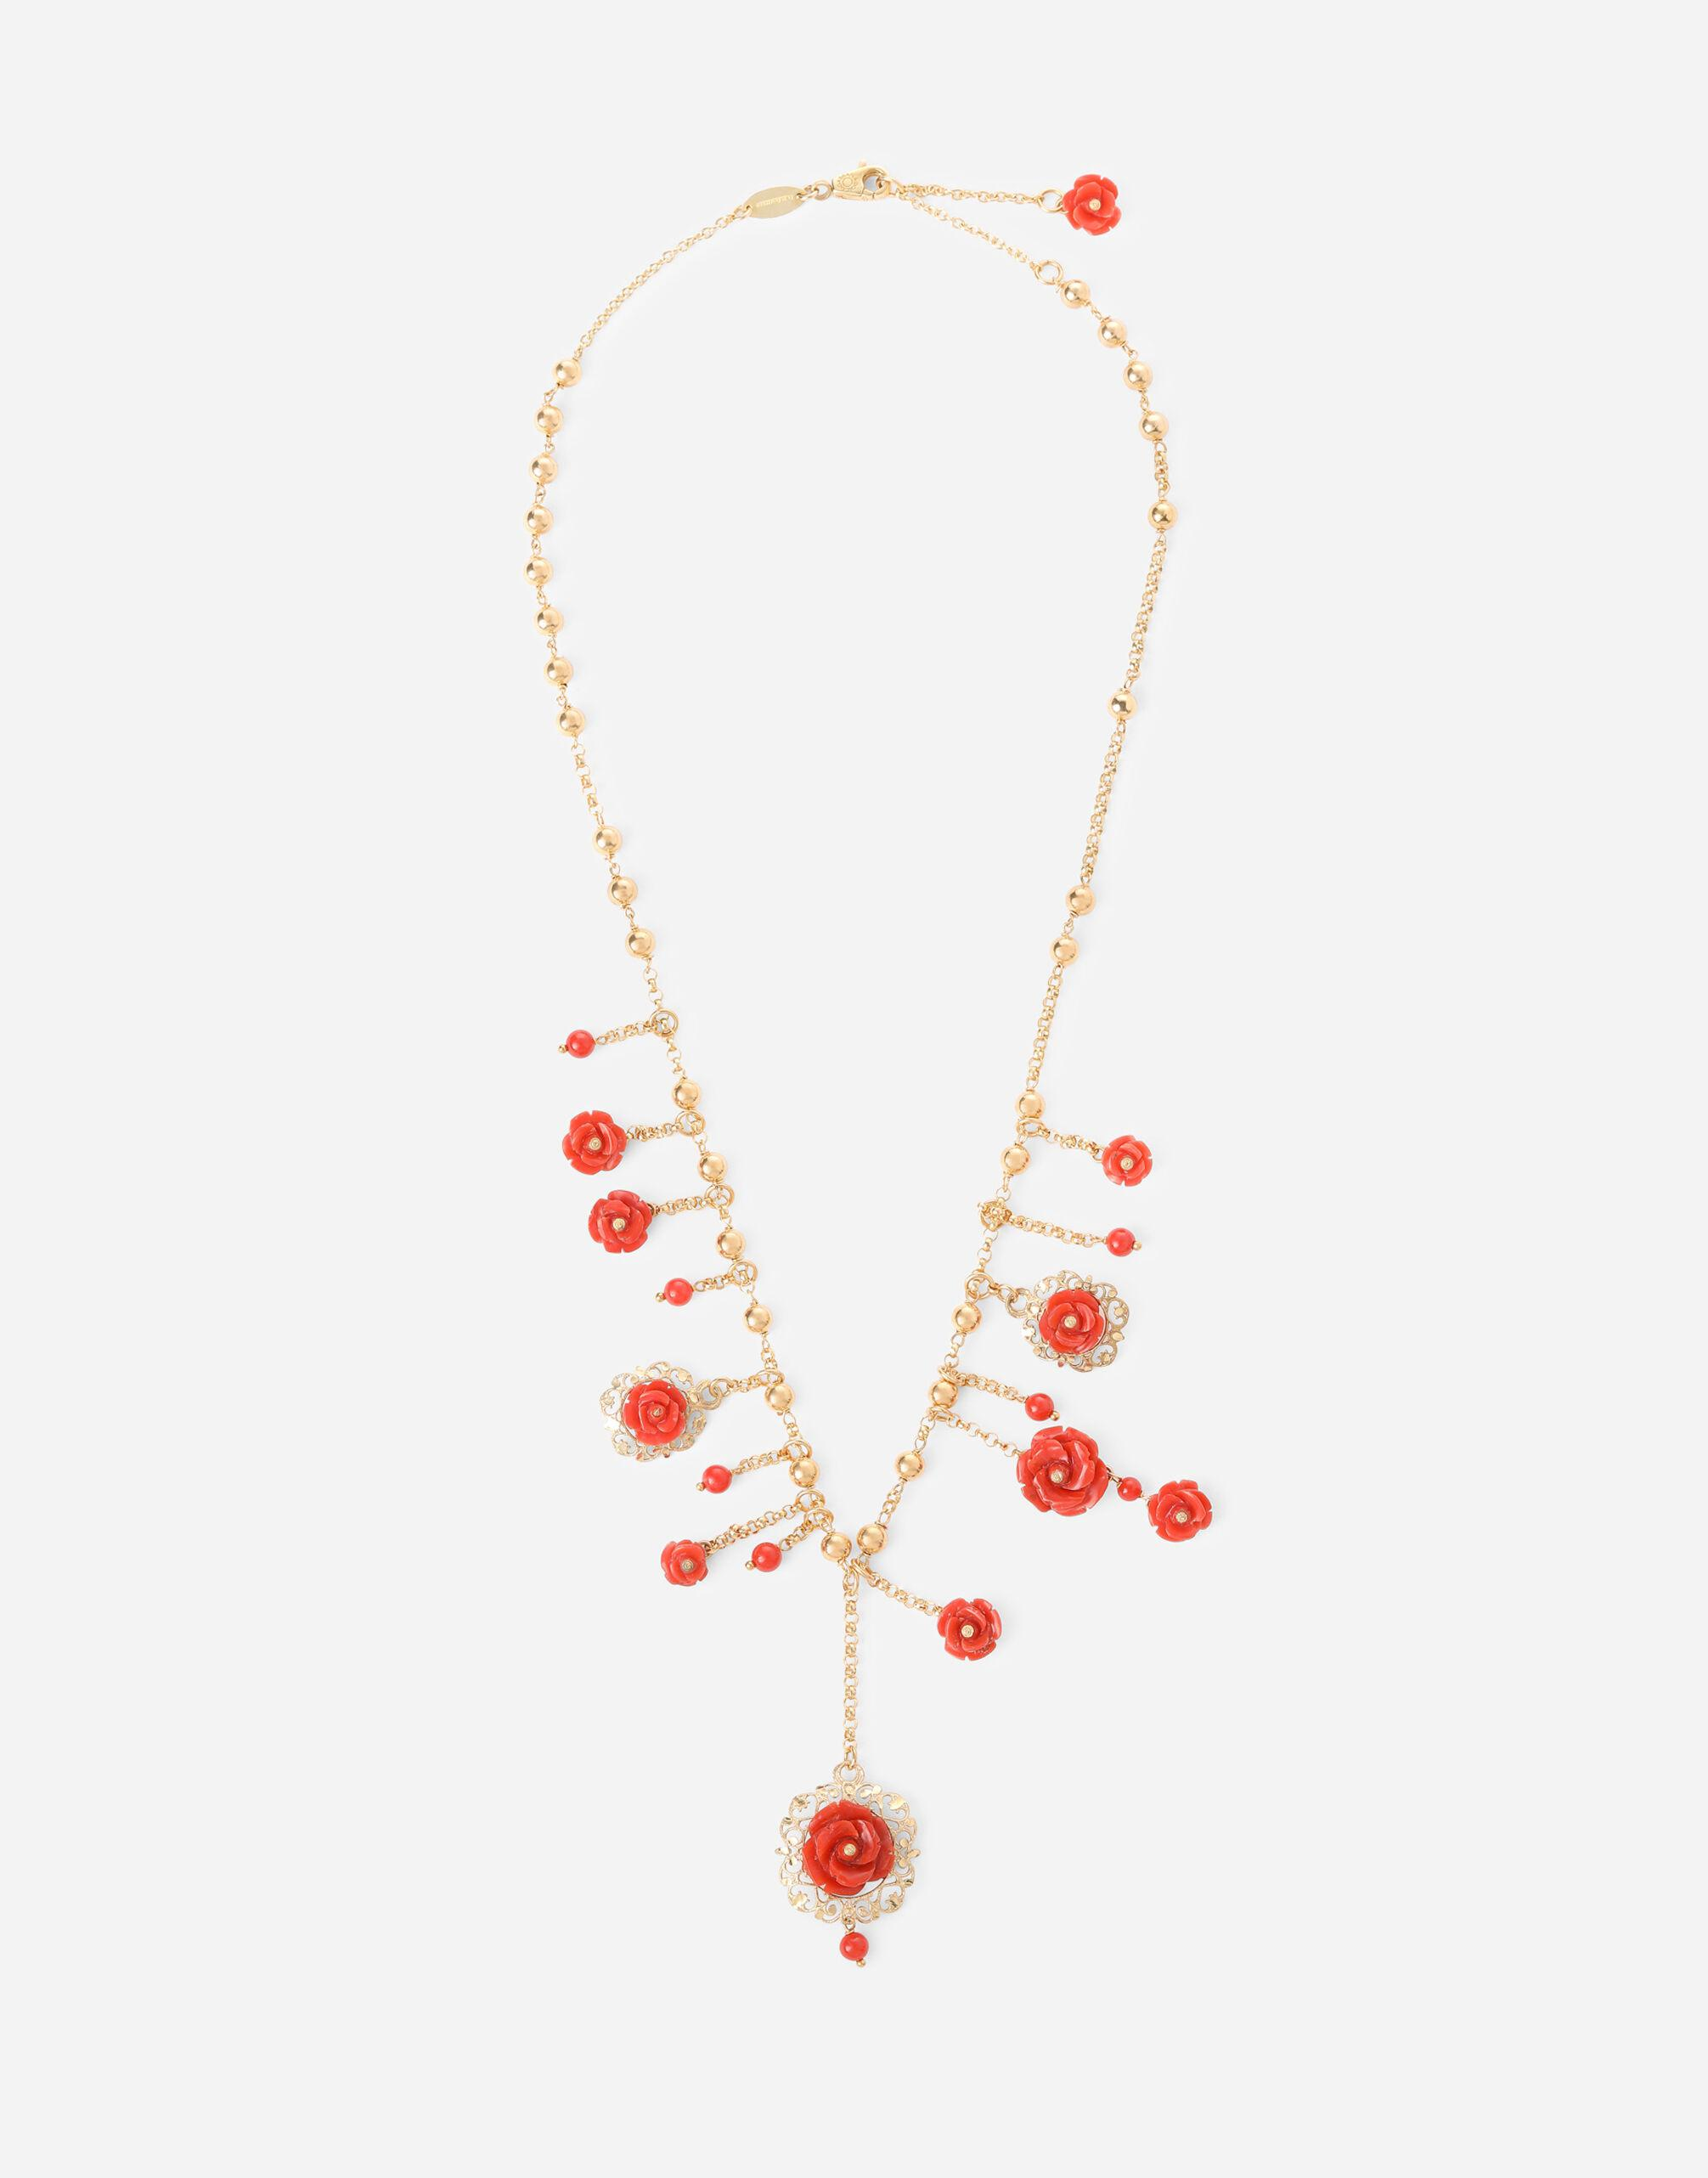 Coral necklace in yellow 18kt gold with coral rose